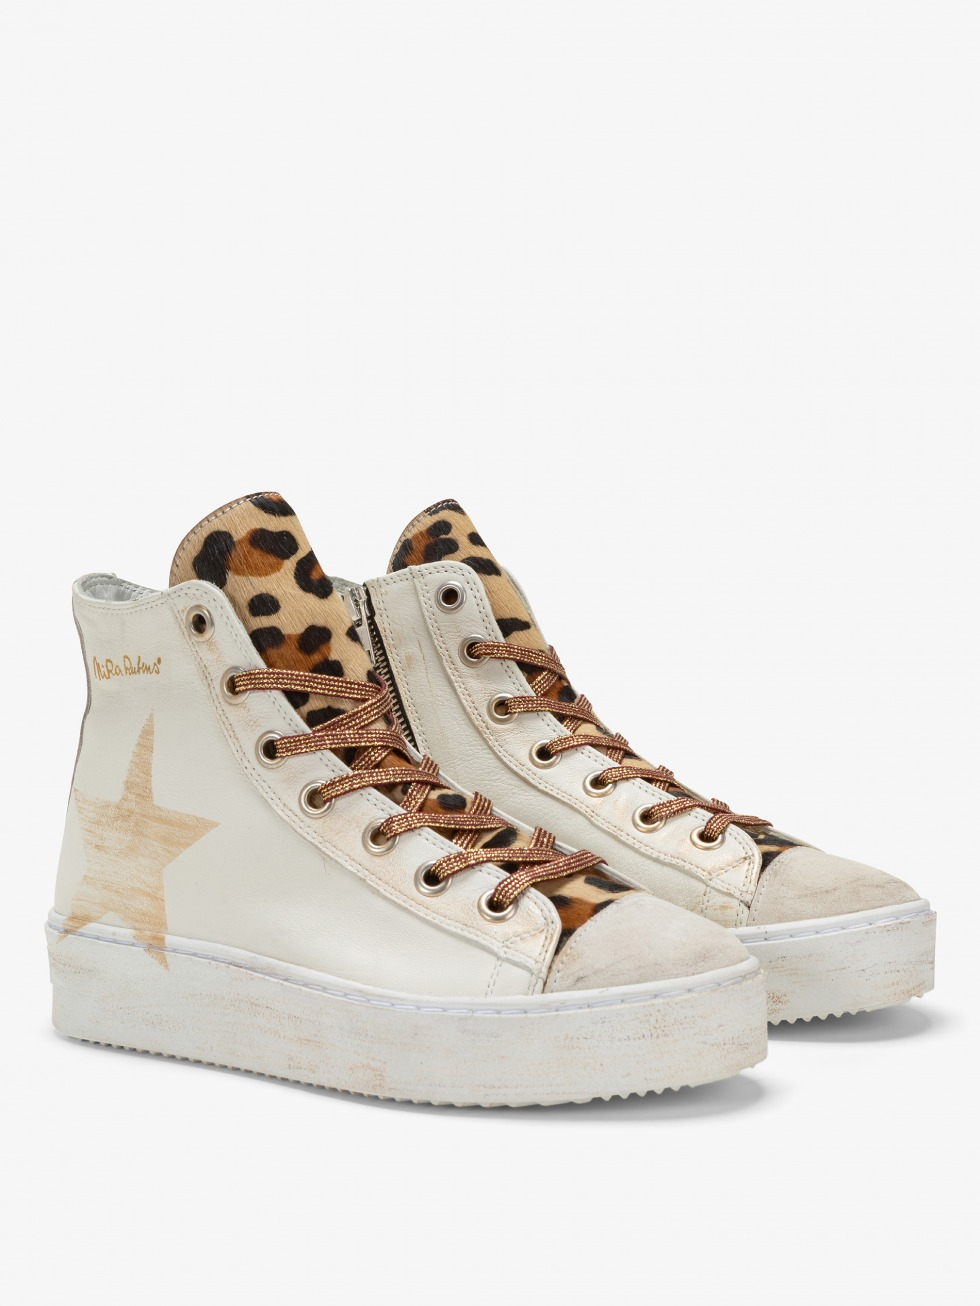 Long Island Sneakers - White Leo Star